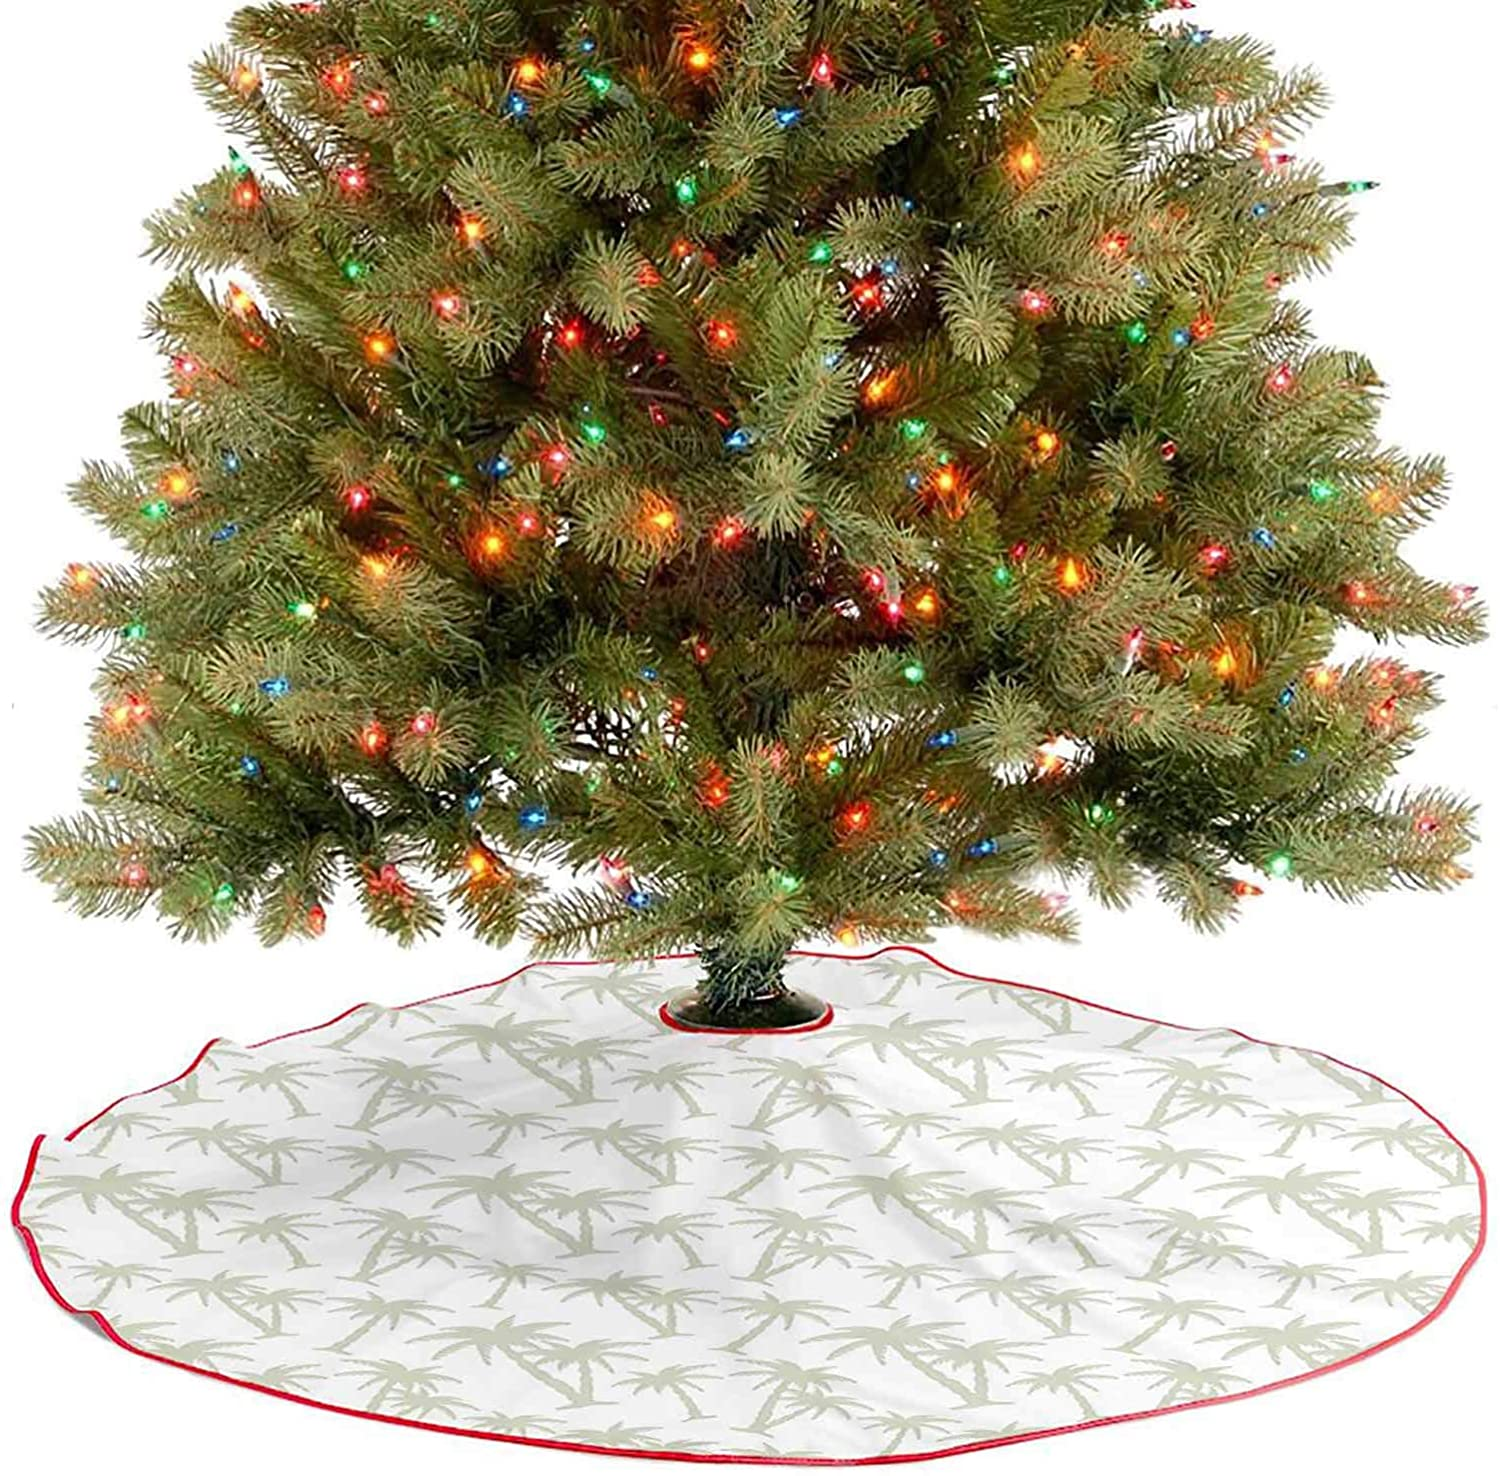 Luxury Christmas Tree Skirt Tropical Coconut Palm Trees Pattern Print Exotic Hawaiian Wild Lands Holiday Theme Image Christmas Holiday Party Decoration Super Soft and Appealing to The Eye - 30 Inch